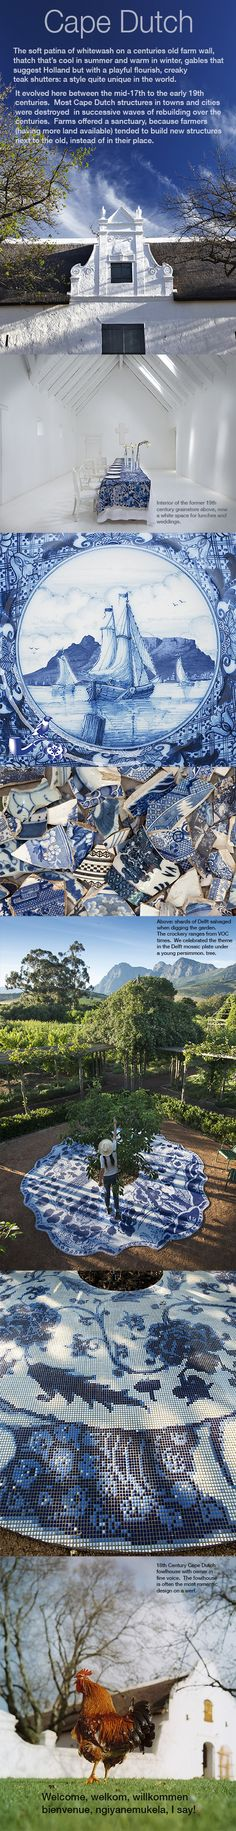 NUWE  CAPE DUTCH BLOG FEB 2014